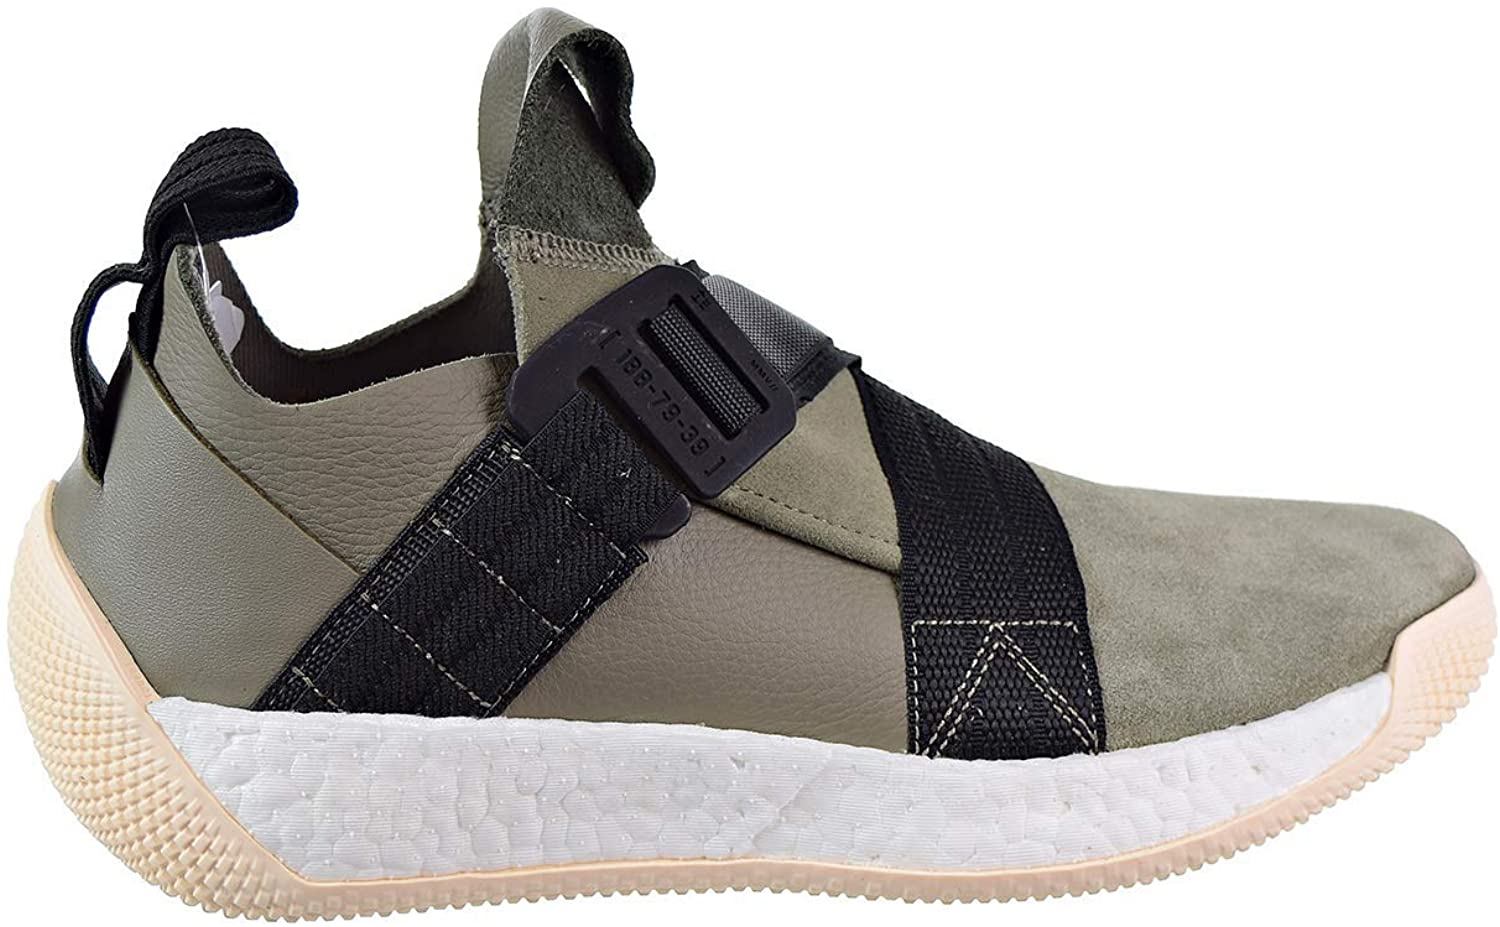 adidas Harden Ls2 Buckle Black/White/Gold Basketball Shoes (AC7435)